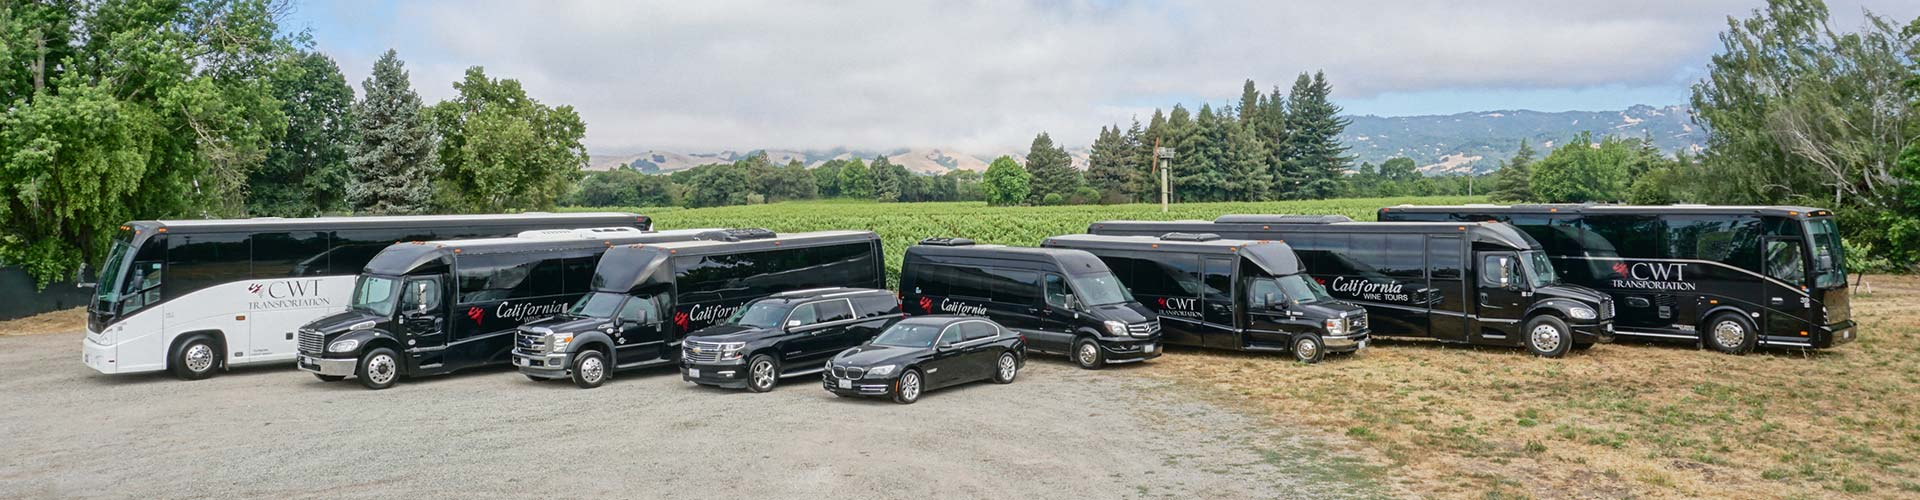 Garage Audi Tours Napa And Sonoma Valleys Sonoma County Winery Tours Largest Fleet